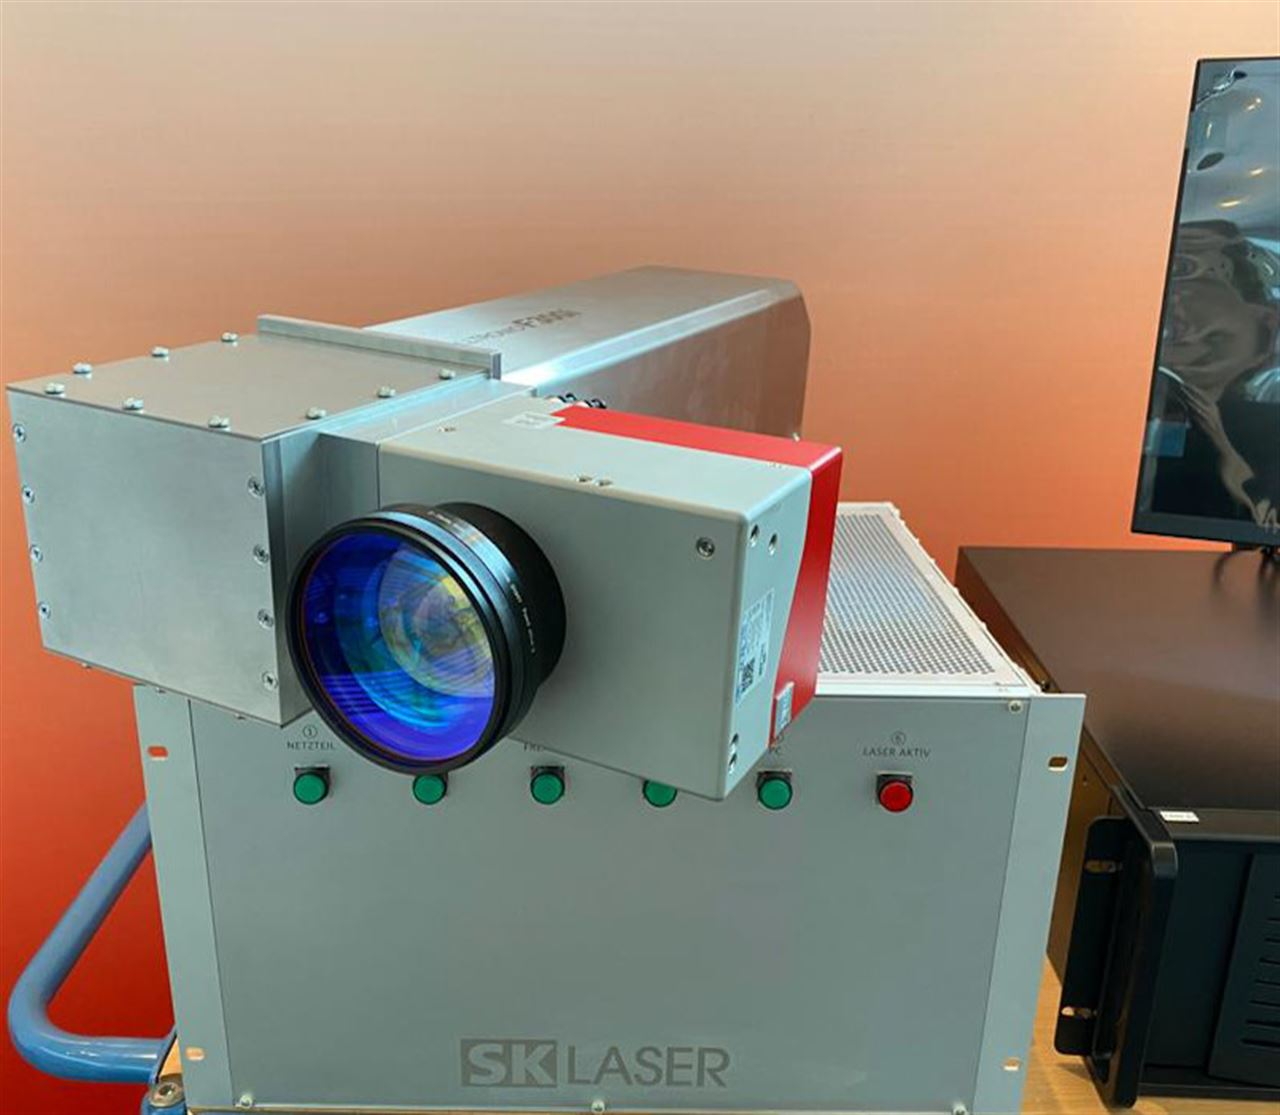 SK LASER High Speed Laser F300i